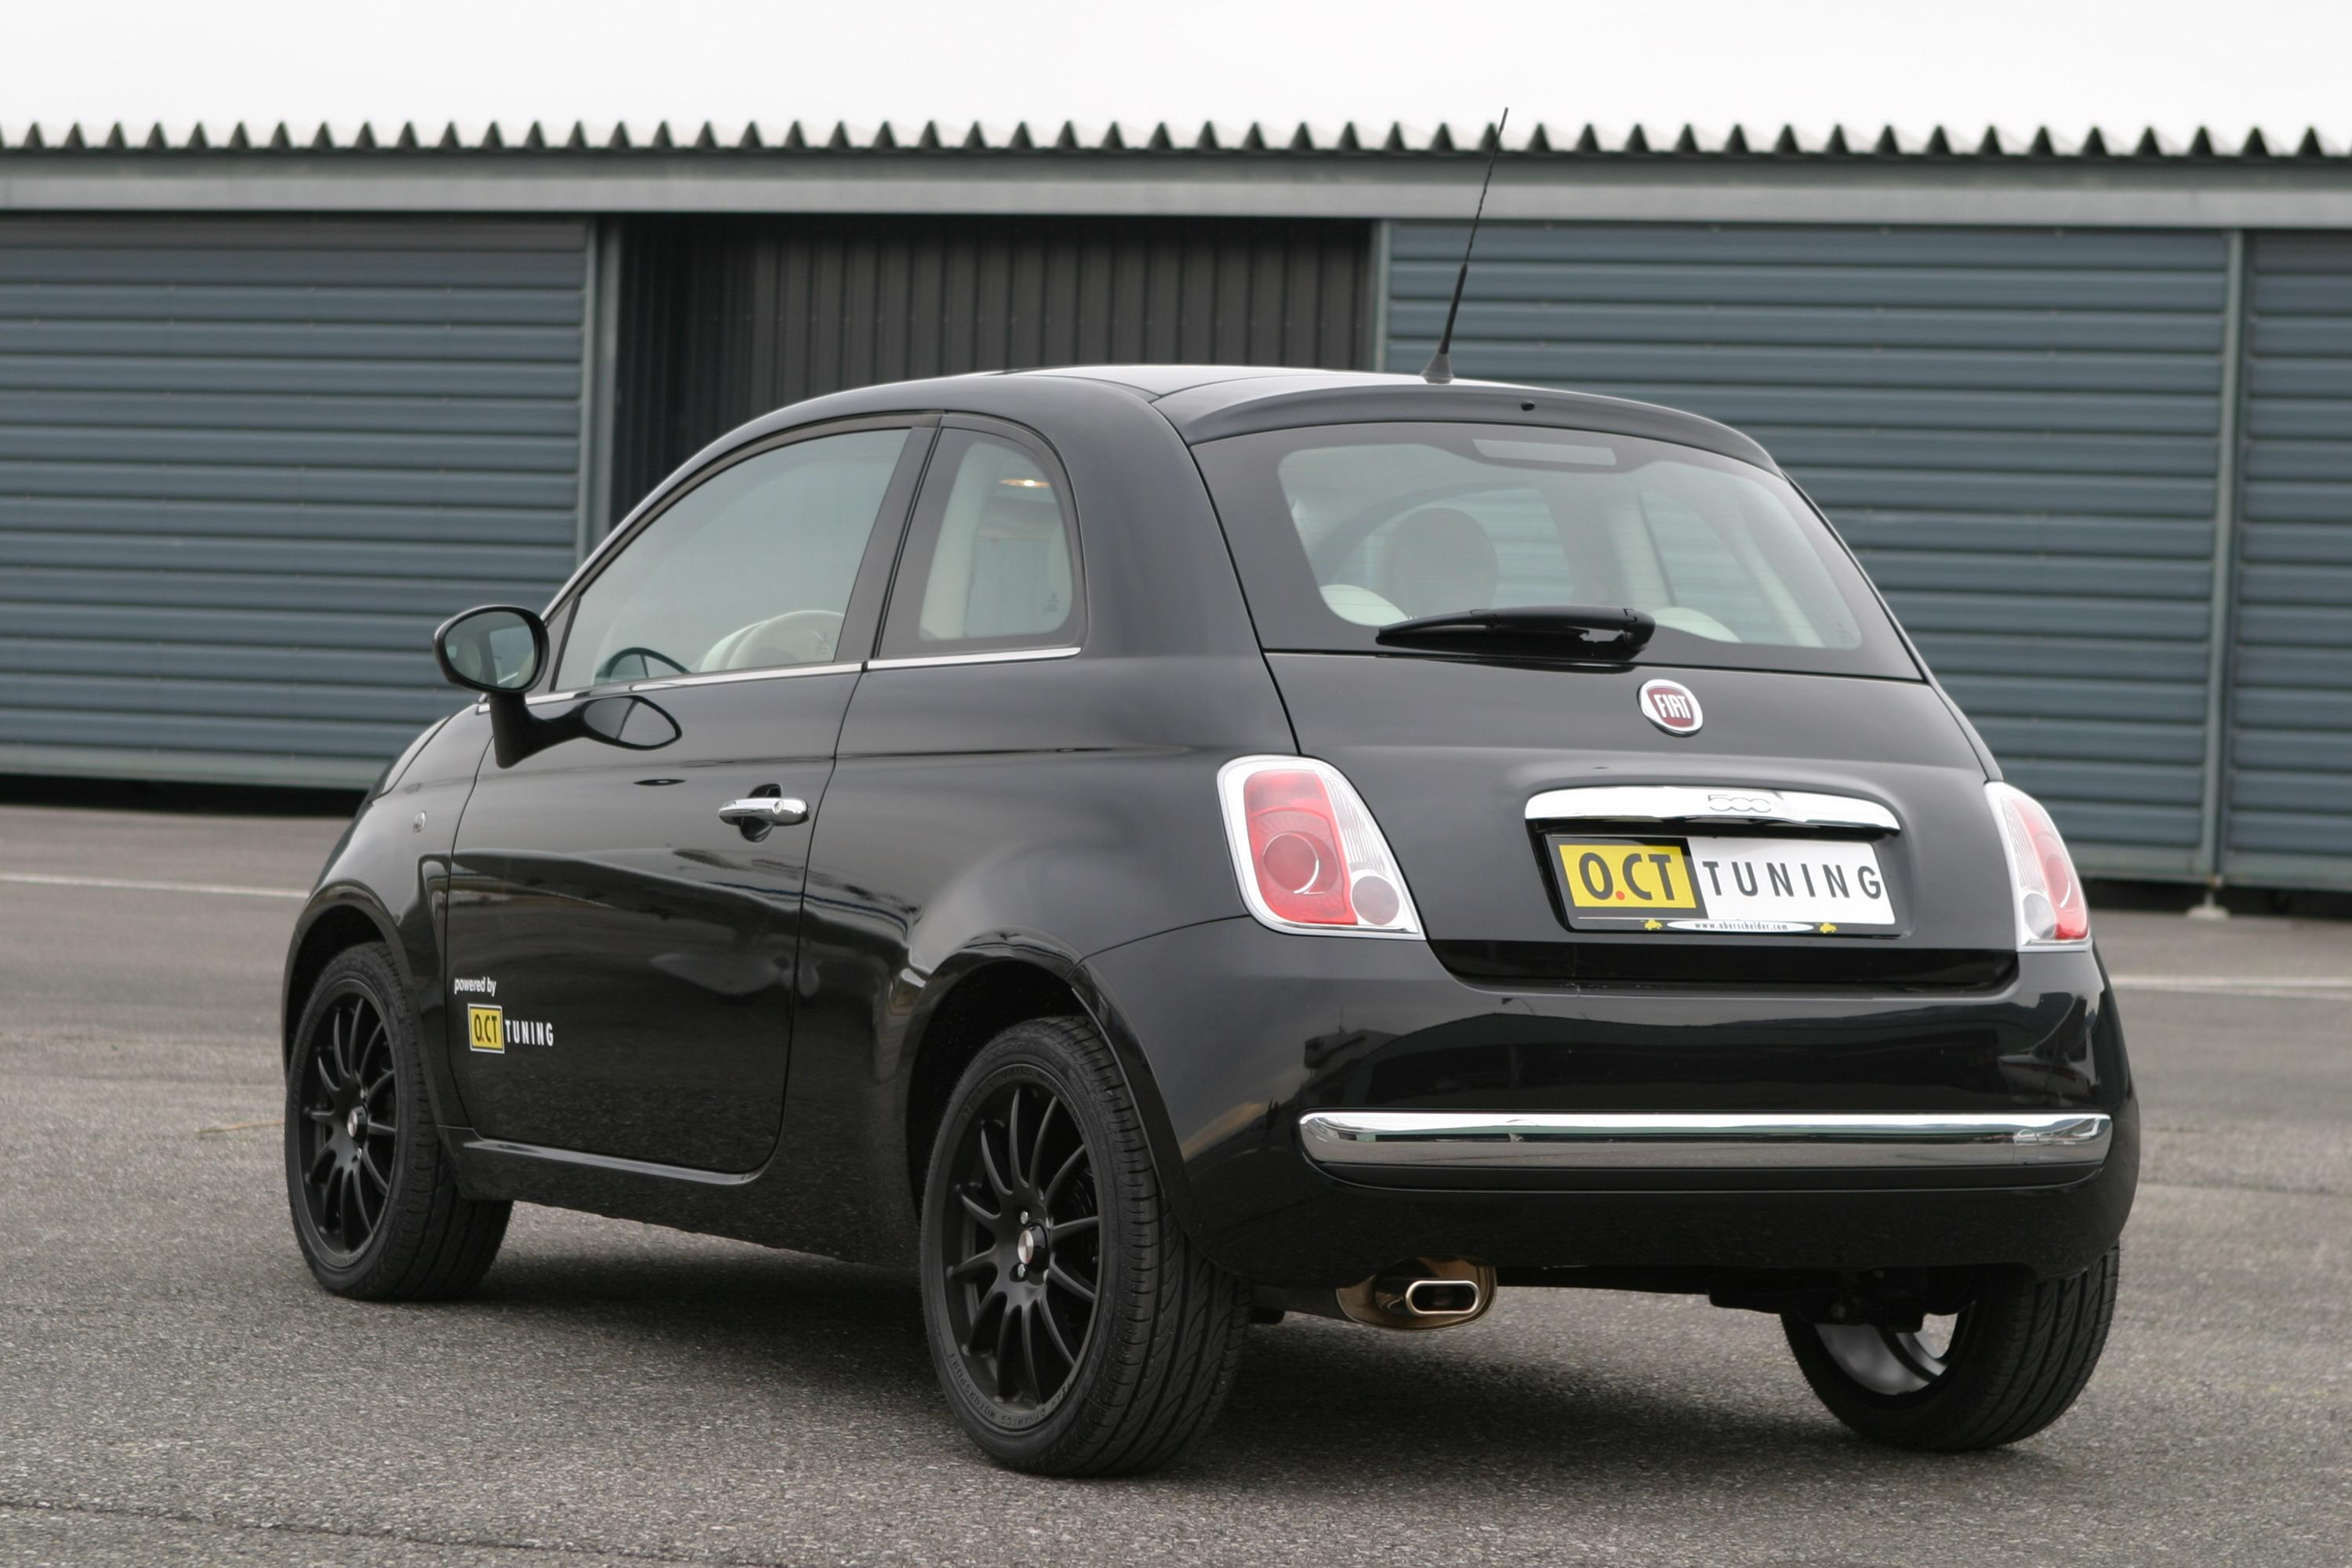 20 more power for fiat 500 from oct tuning gallery 240747. Black Bedroom Furniture Sets. Home Design Ideas